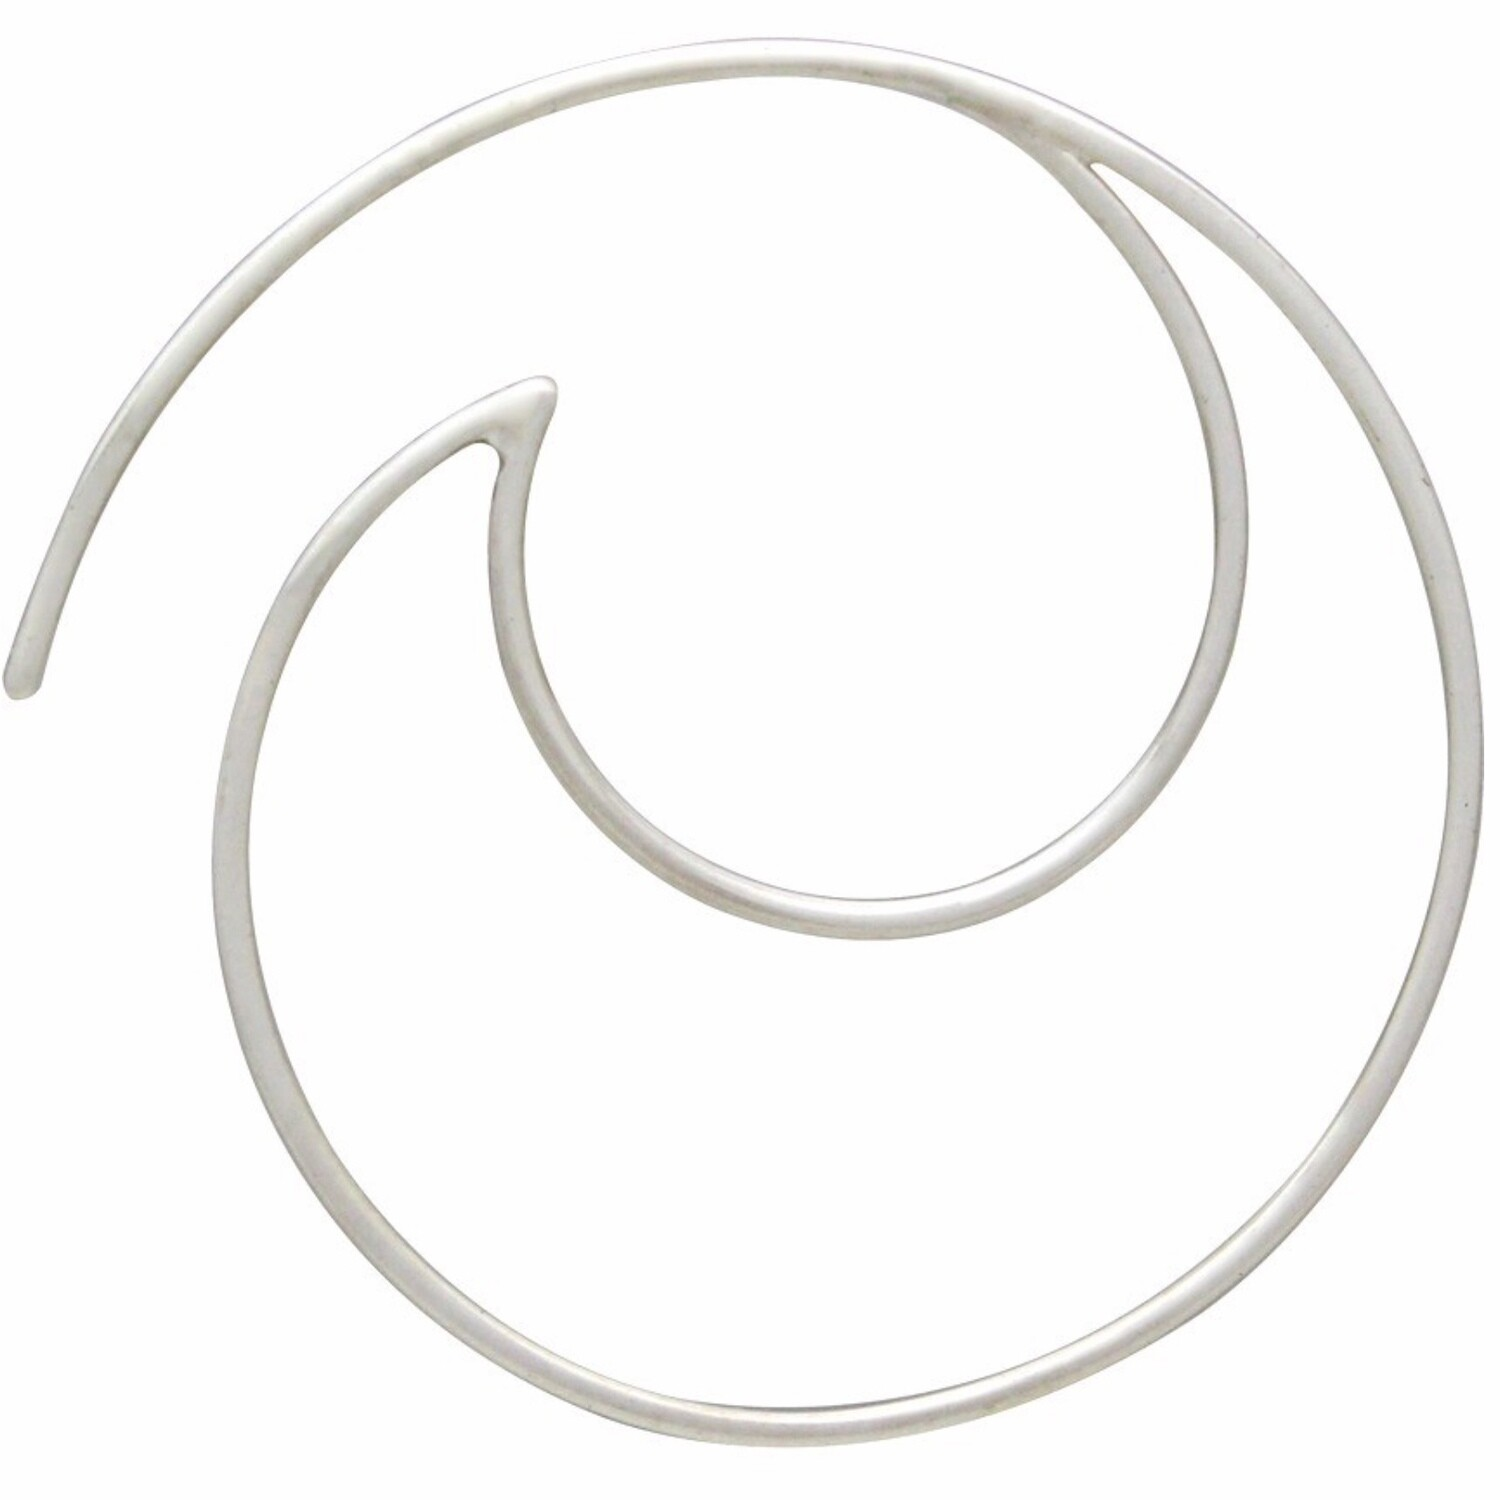 Sterling Silver Minimalist Crescent Hoops - H12-2999